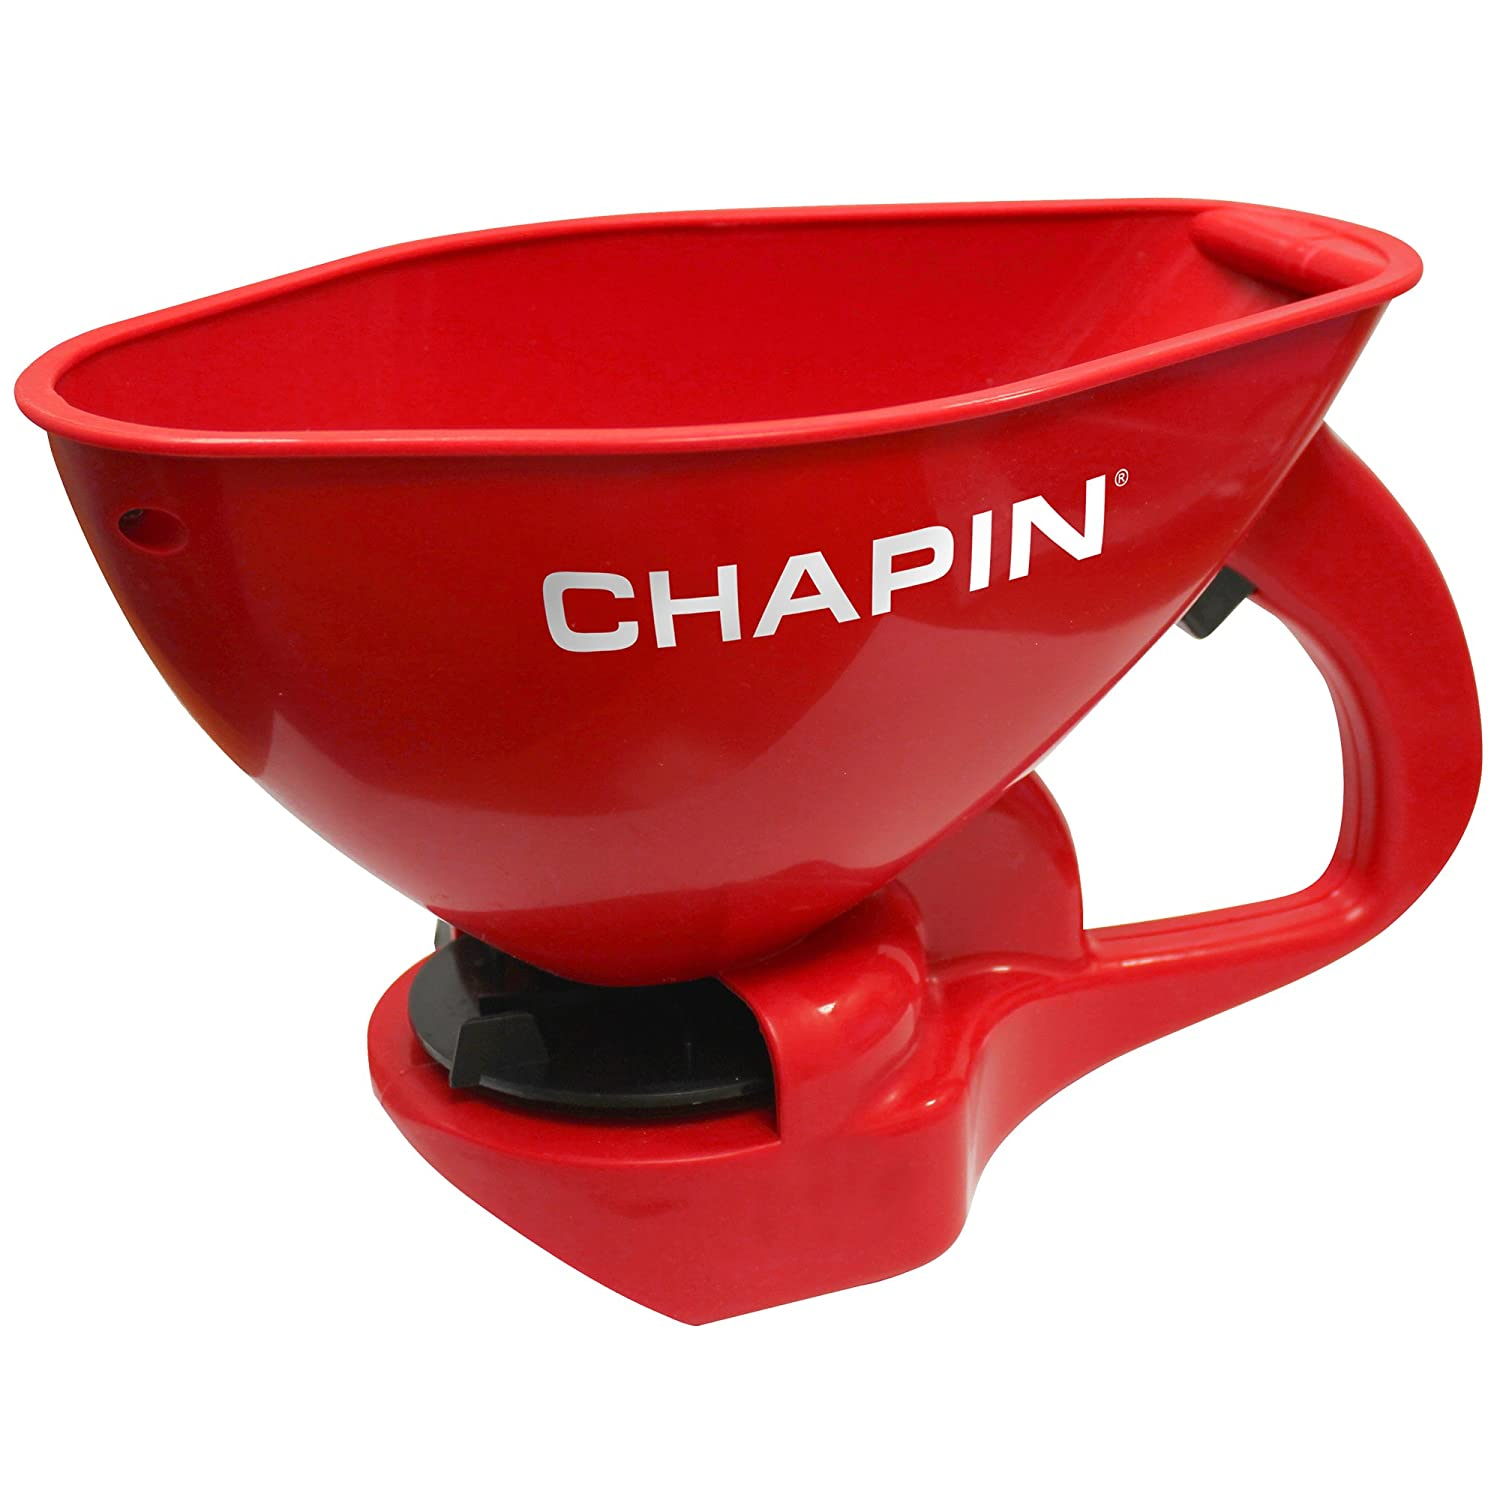 Chapin 84150A 1.5-Liter All Season Poly Hand Crank Spreader For Seeds, Fertilizer, Salt and Ice Melt Chapin International